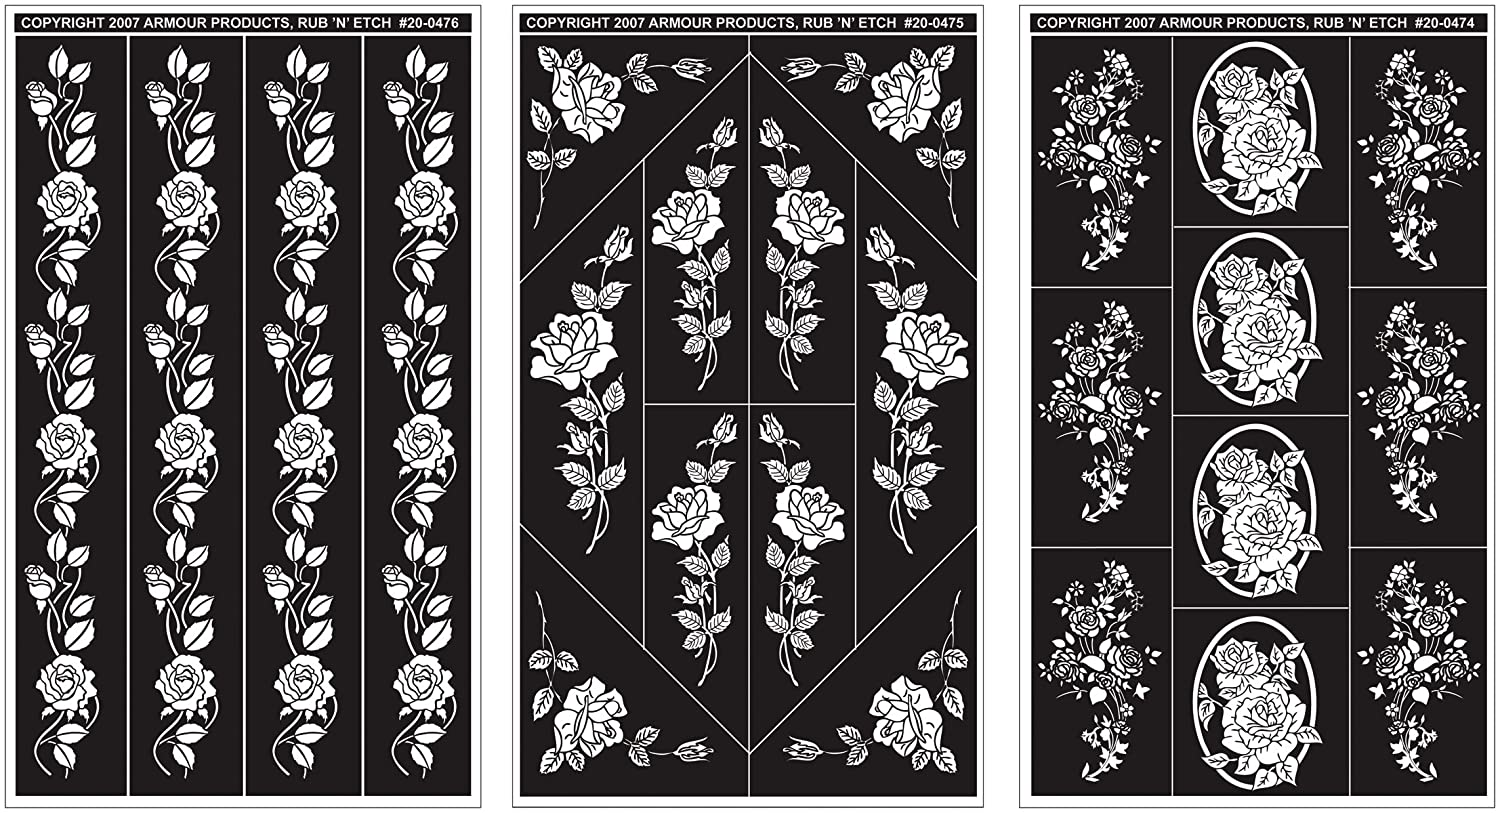 Armour Products Rub 'n' Etch Glass Etching Stencils 5in. x 8in. 3/Pkg Rose Designs 12-7042 Inc. 4336975245